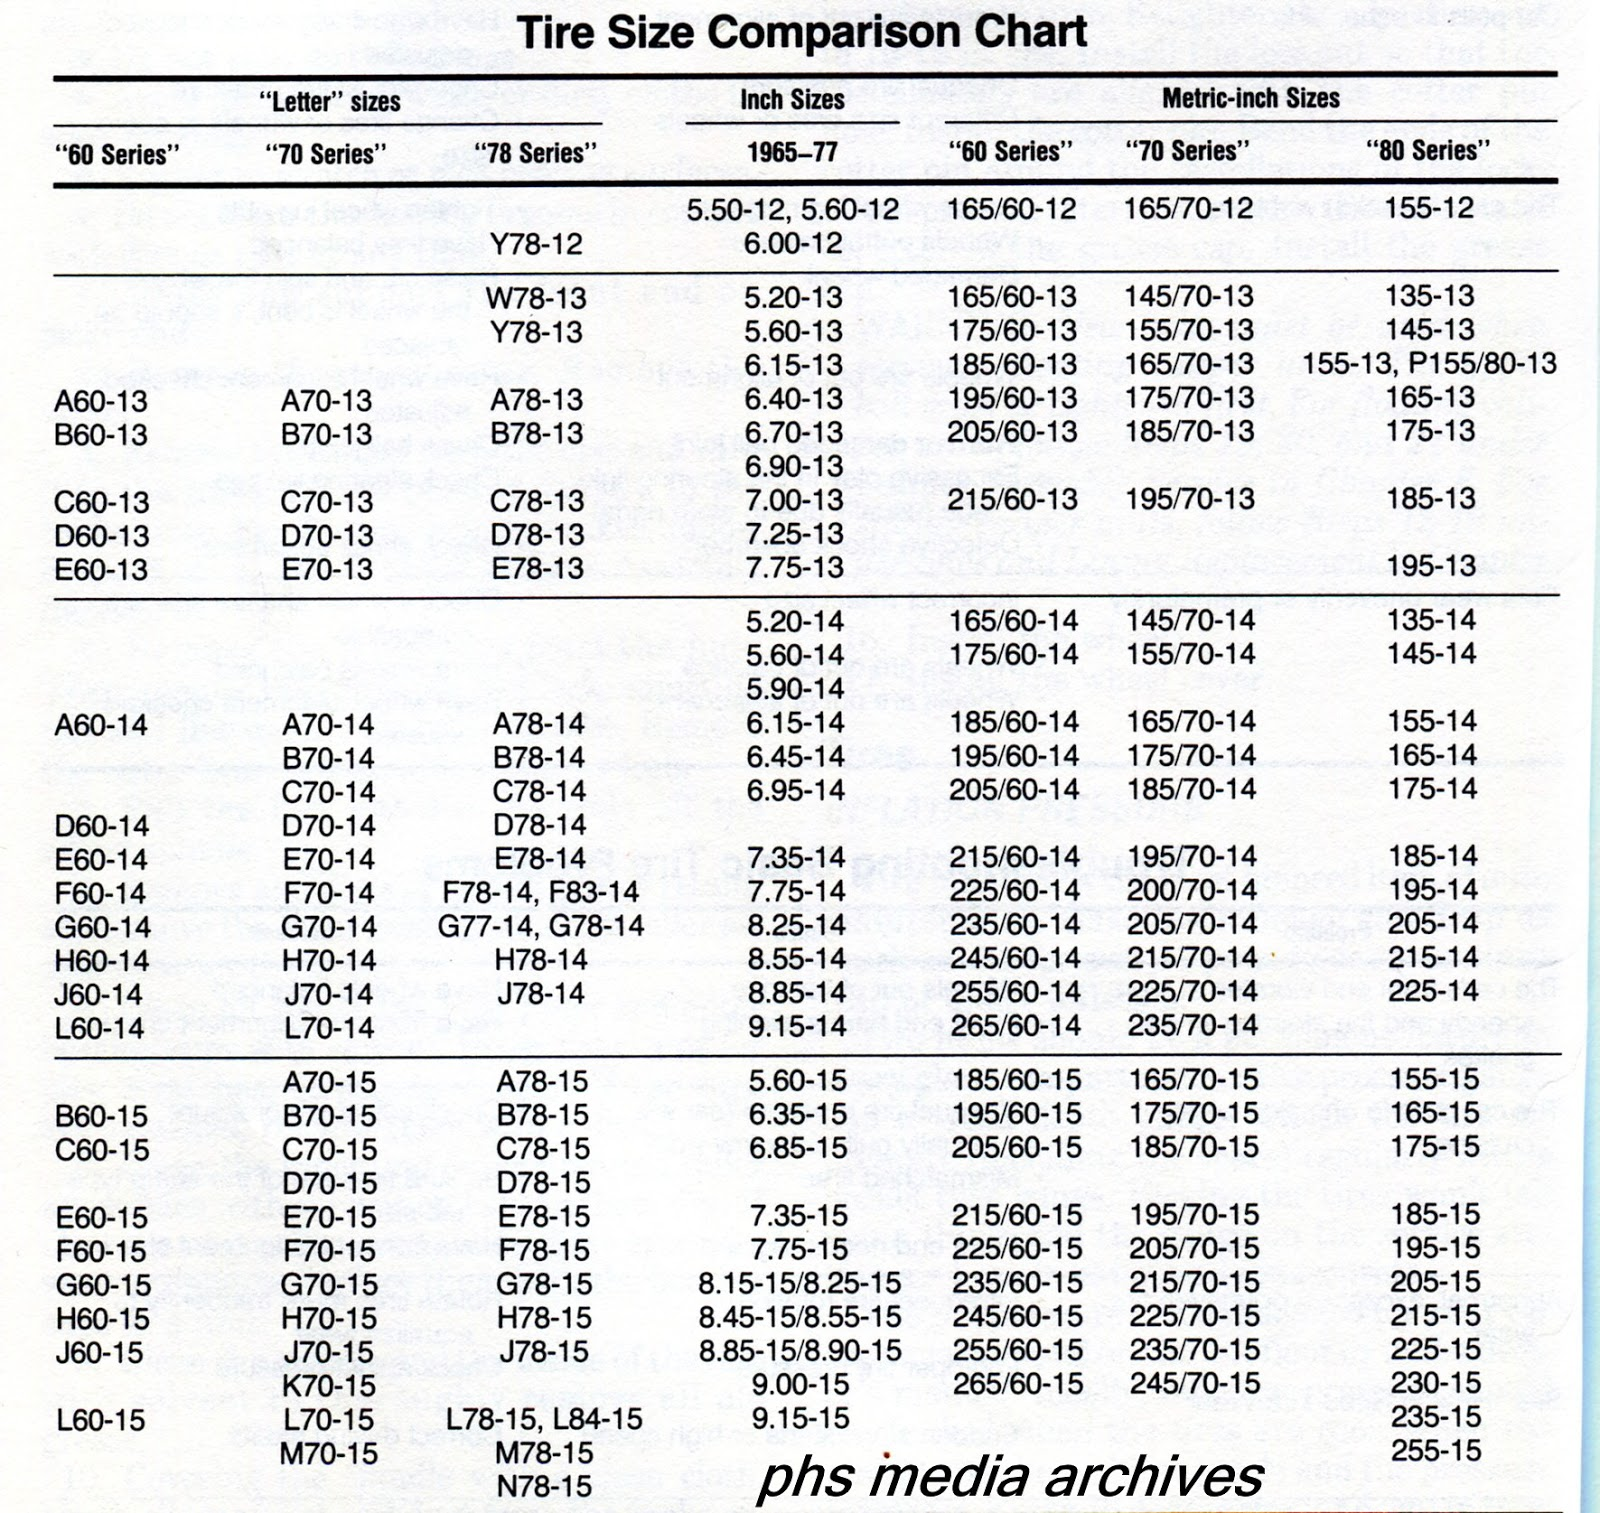 phscollectorcarworld: Tech Files Series: Auto Tire Conversion Chart, Rim sizes and Rotation Guide